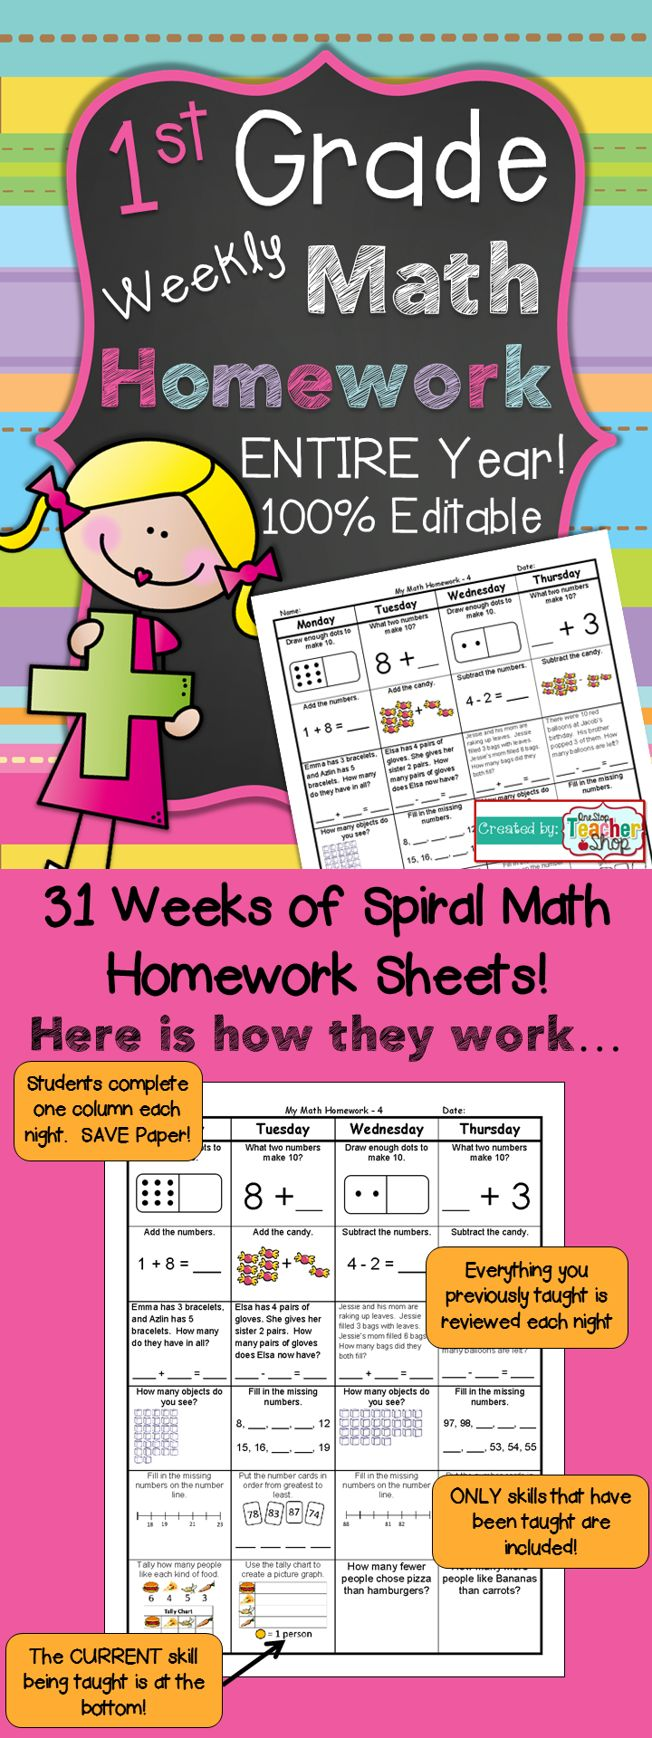 ENTIRE YEAR of 1st Grade Common Core Spiral Math Homework! 100% Editable - First Grade Math Homework, with Answer Keys! Paid